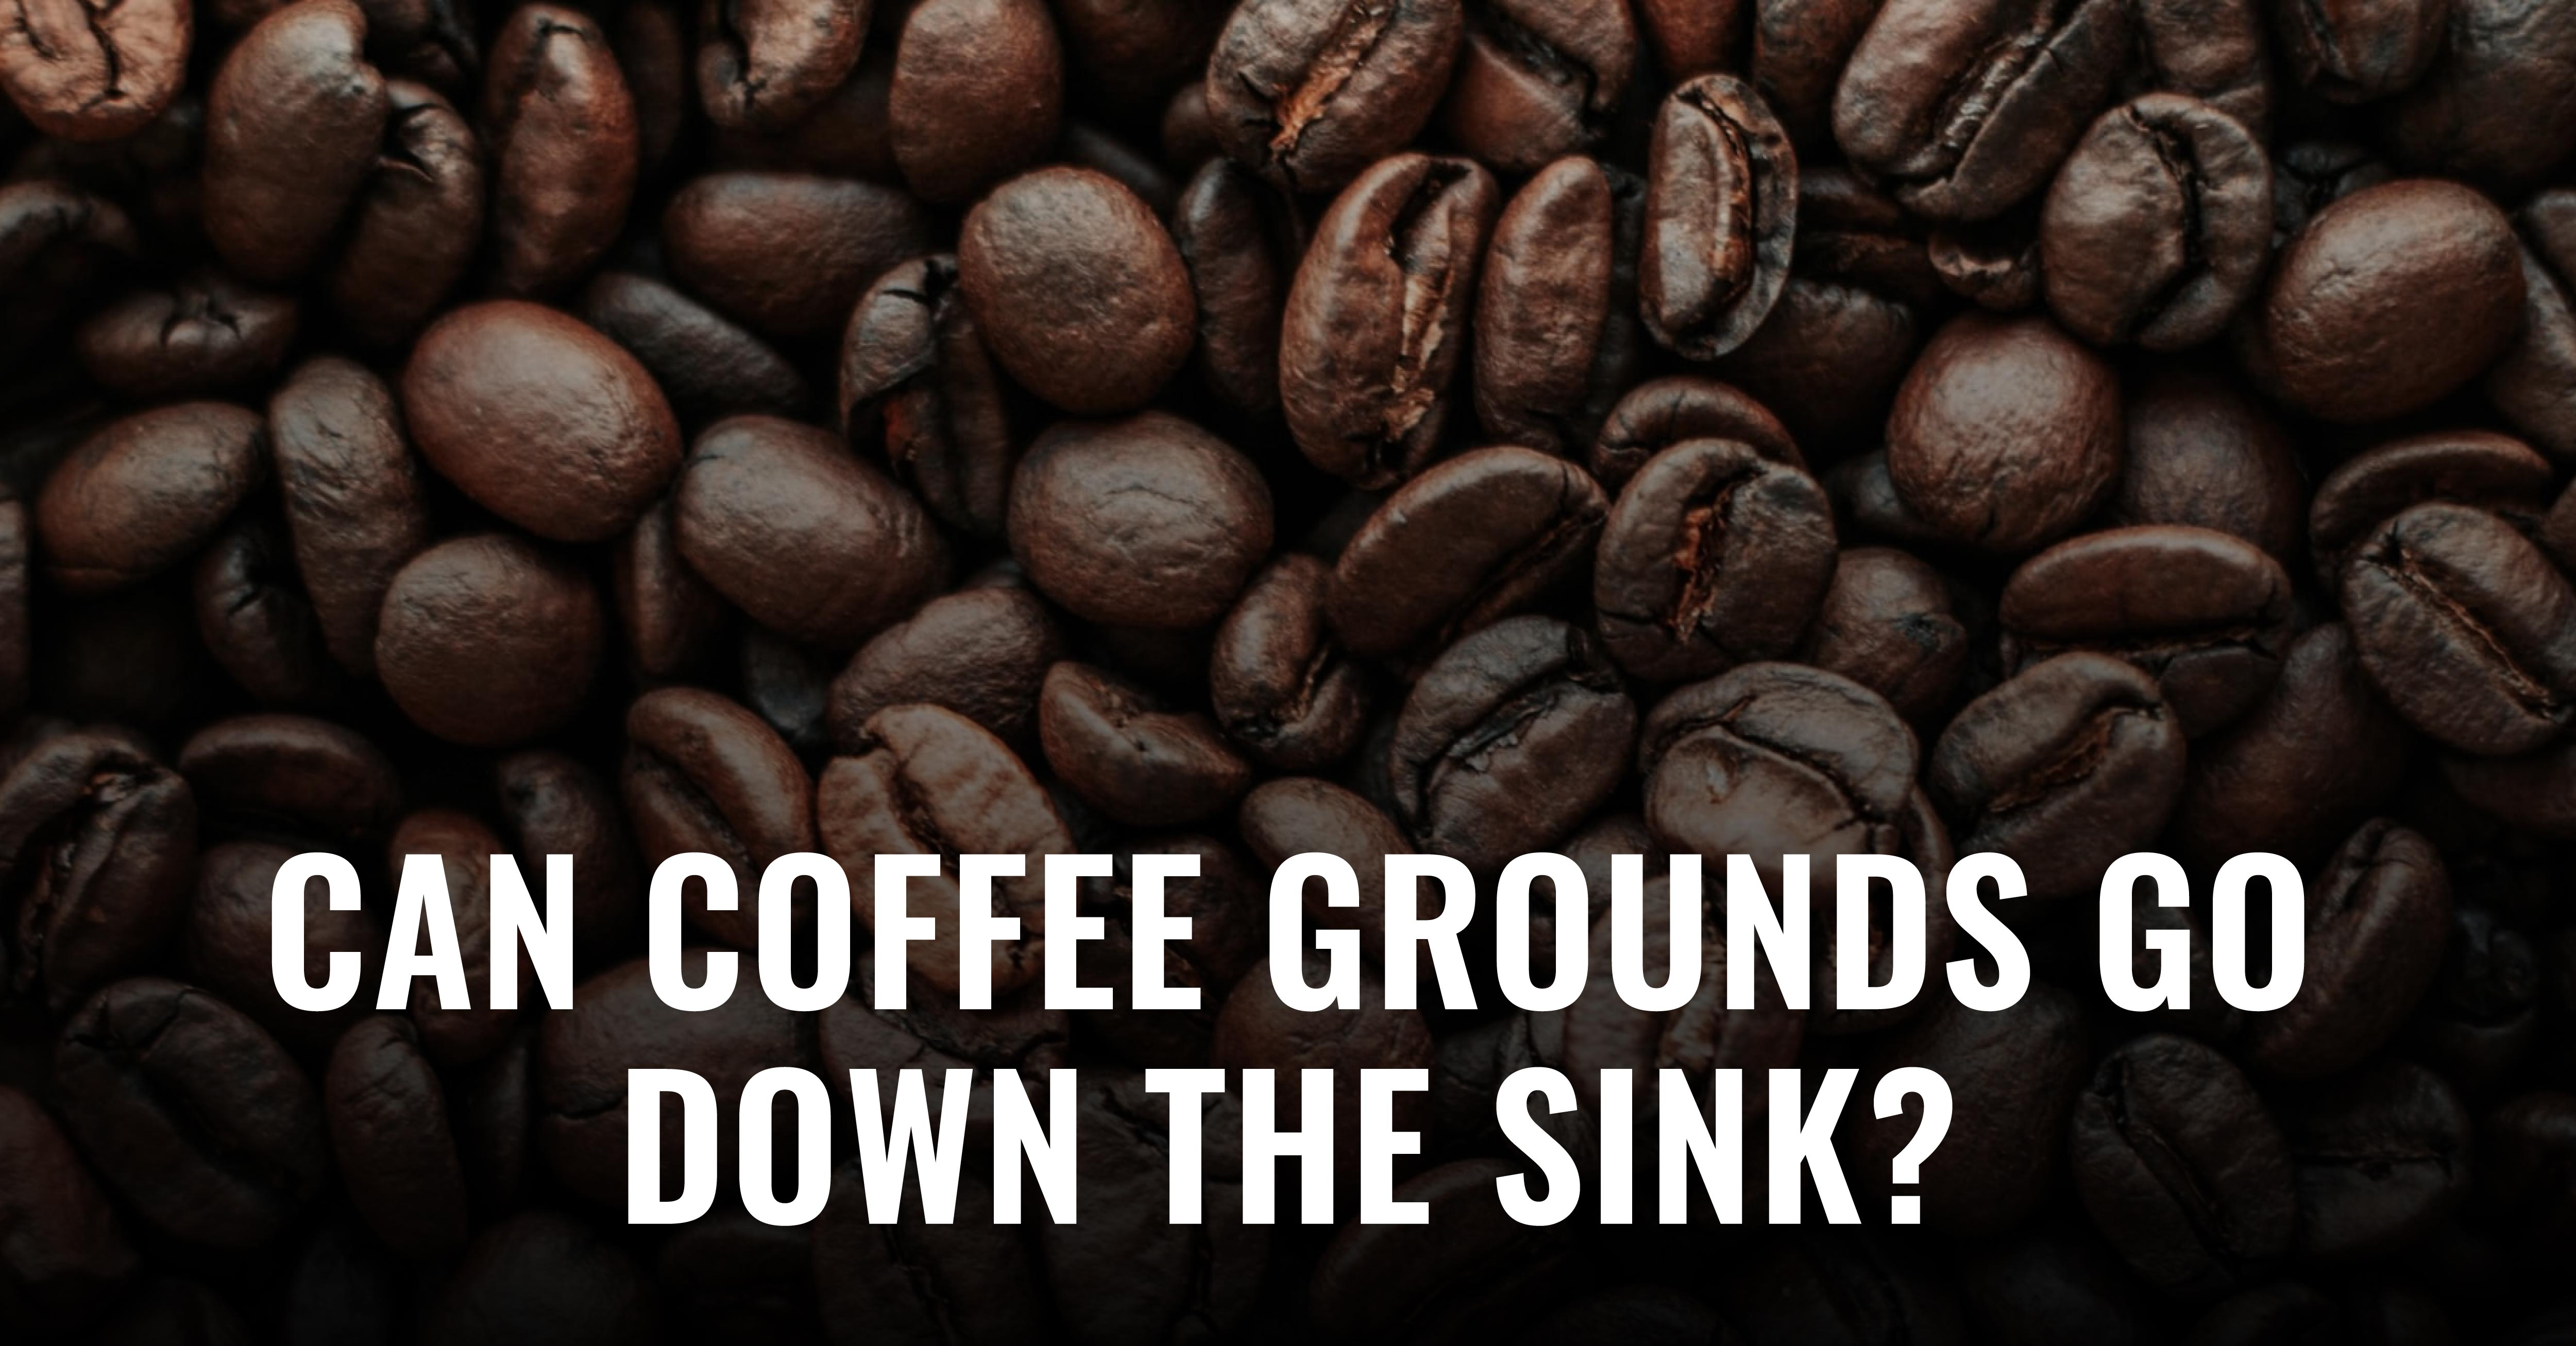 Is pouring coffee grounds down the sink good for your plumbing? Quite a few on the internet would say so, but is there any truth to these claims? Read our take here!